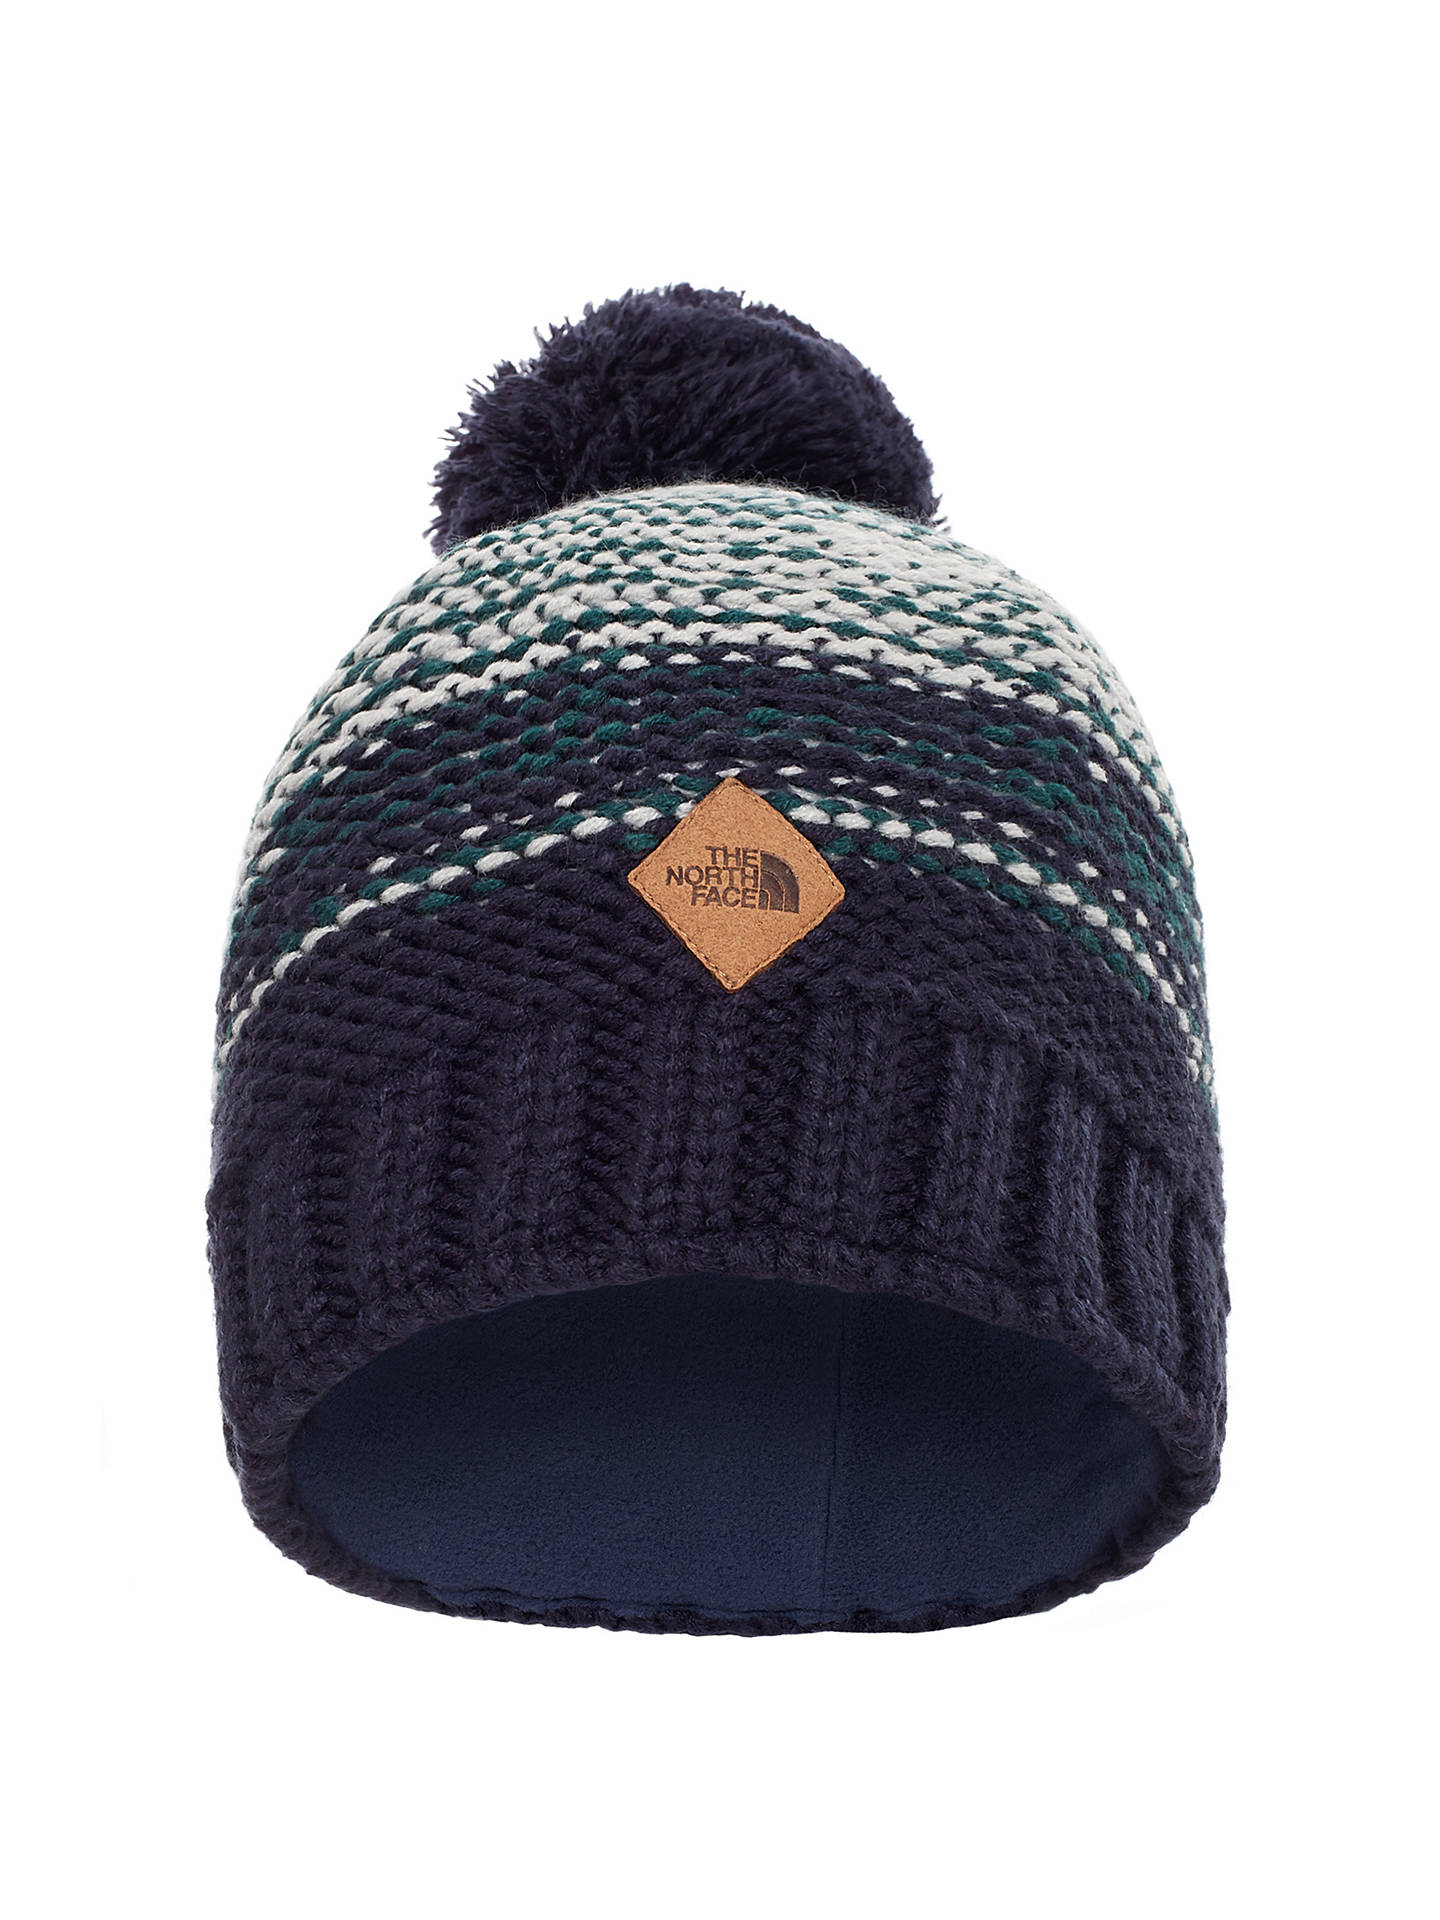 f3c4672b900 ... Buy The North Face Antlers Beanie